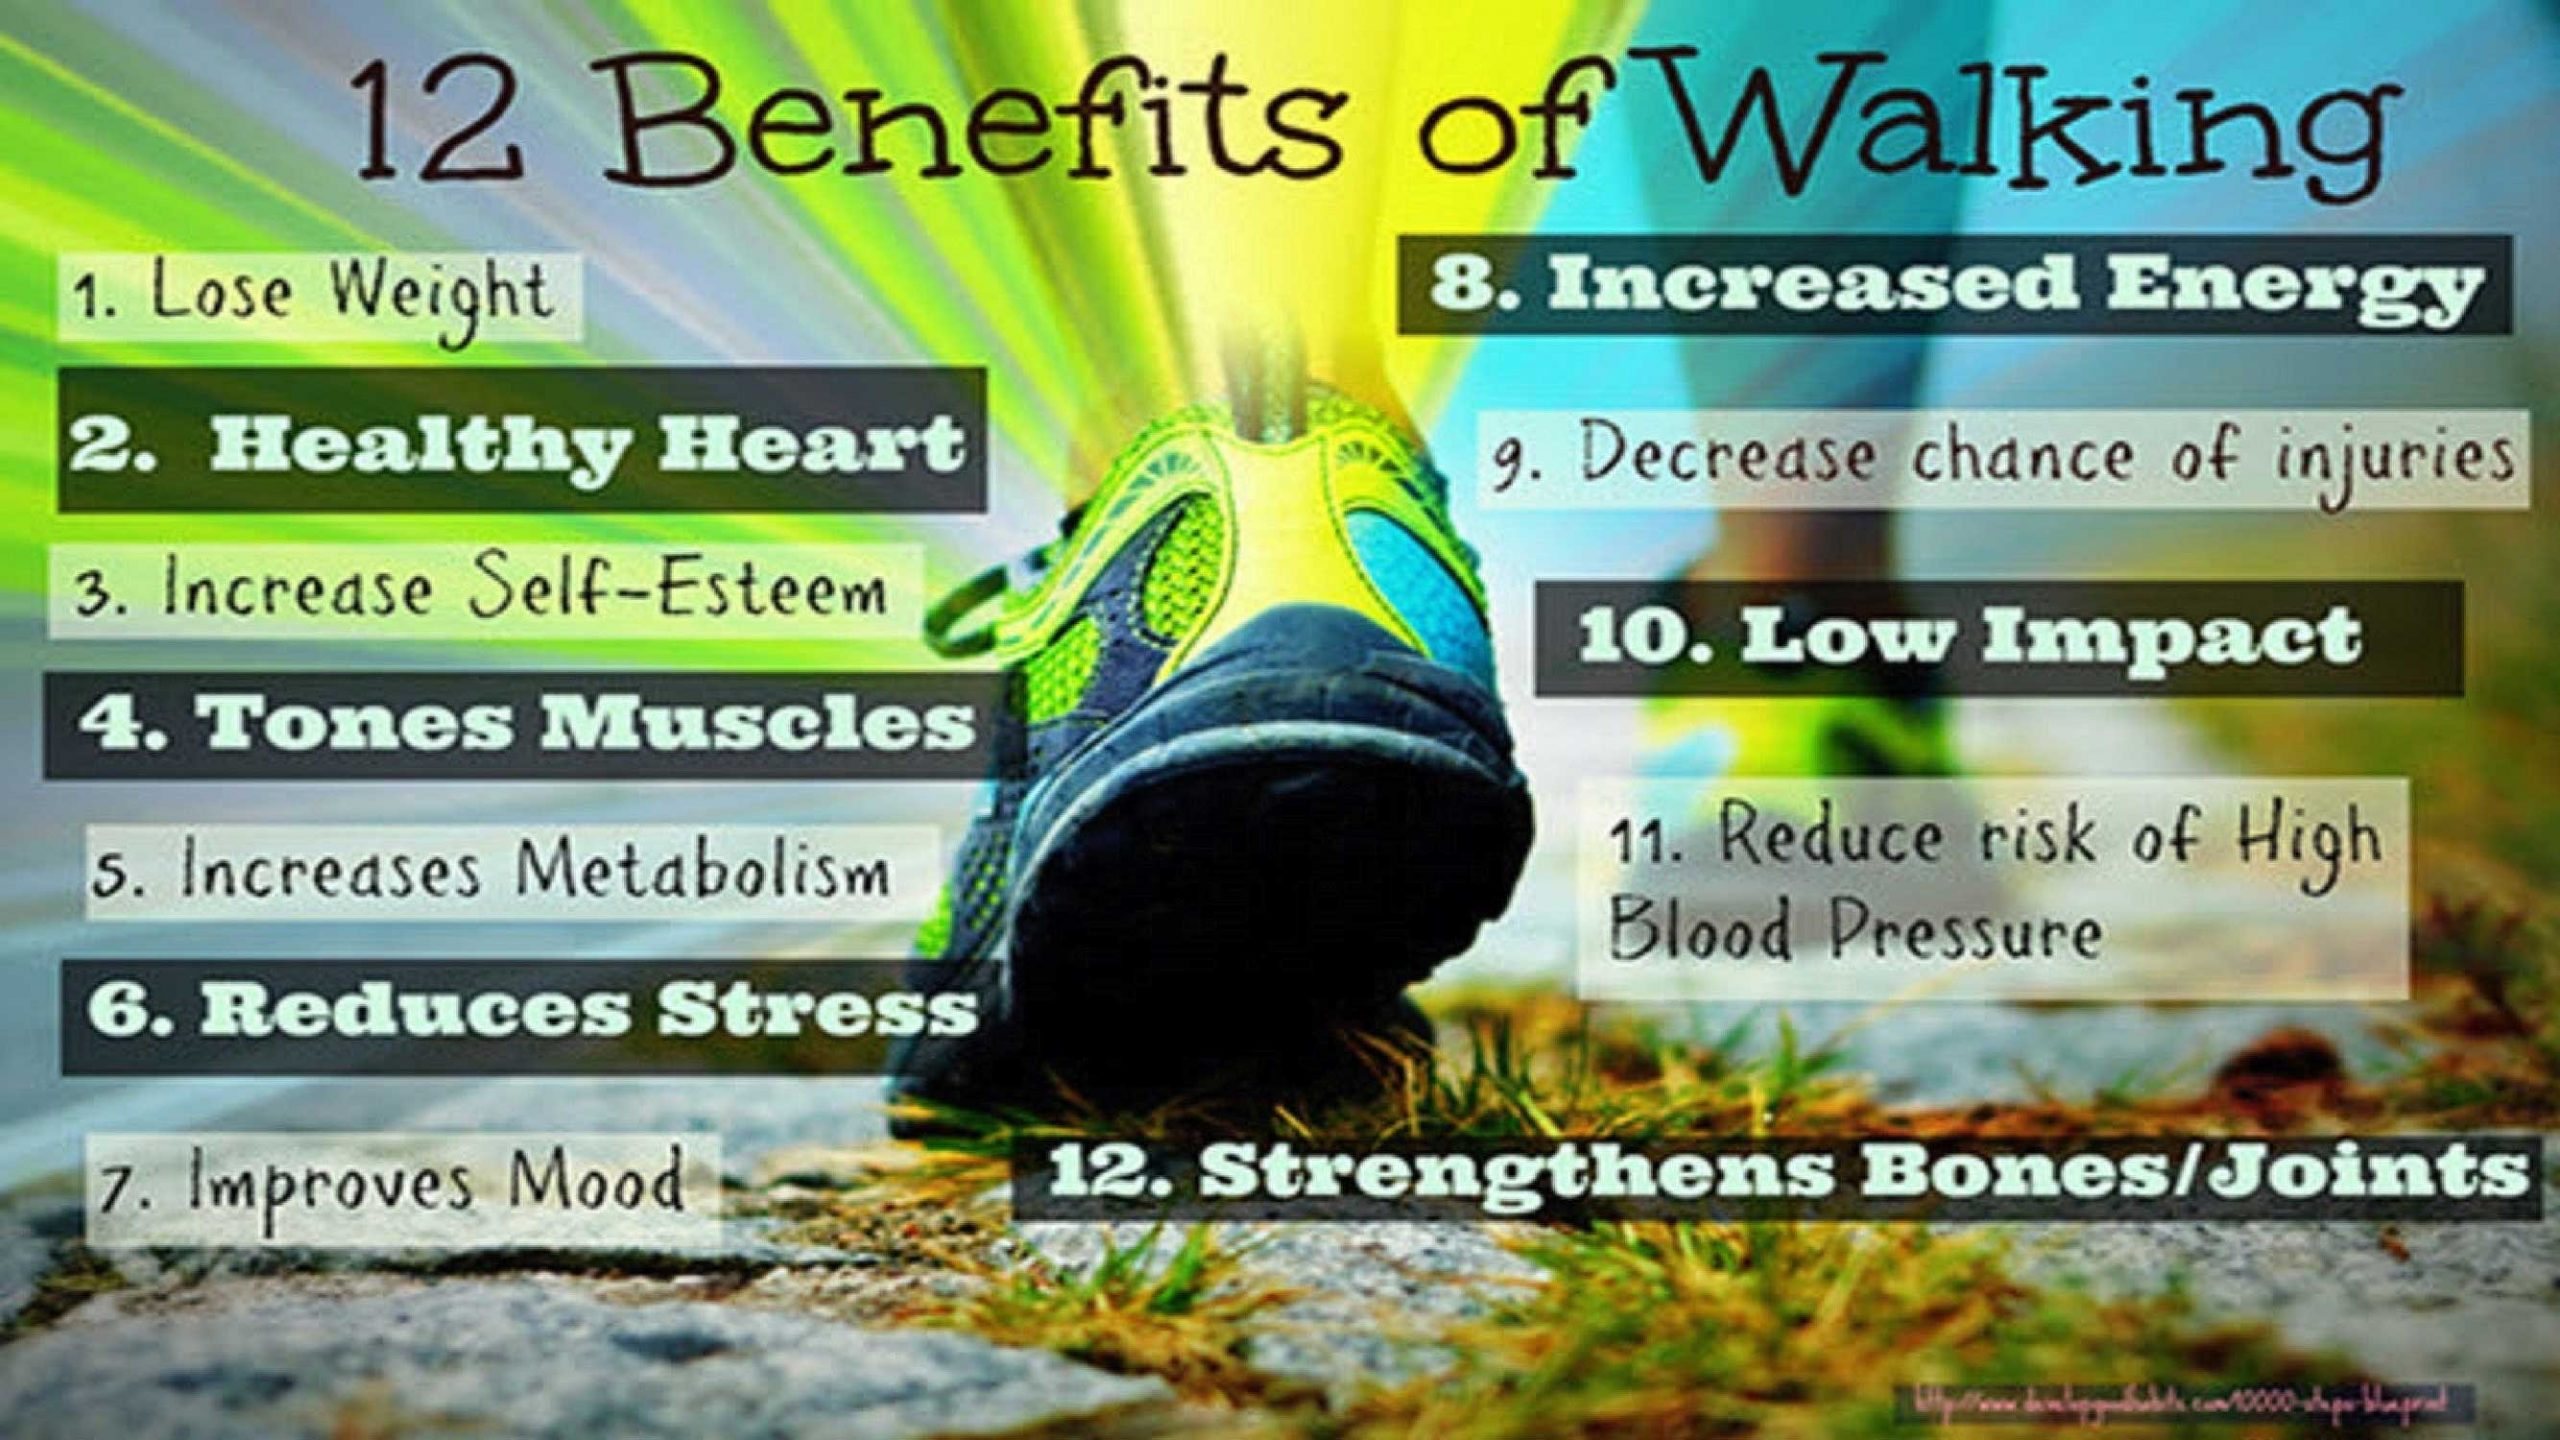 12BenefitsOfWalking